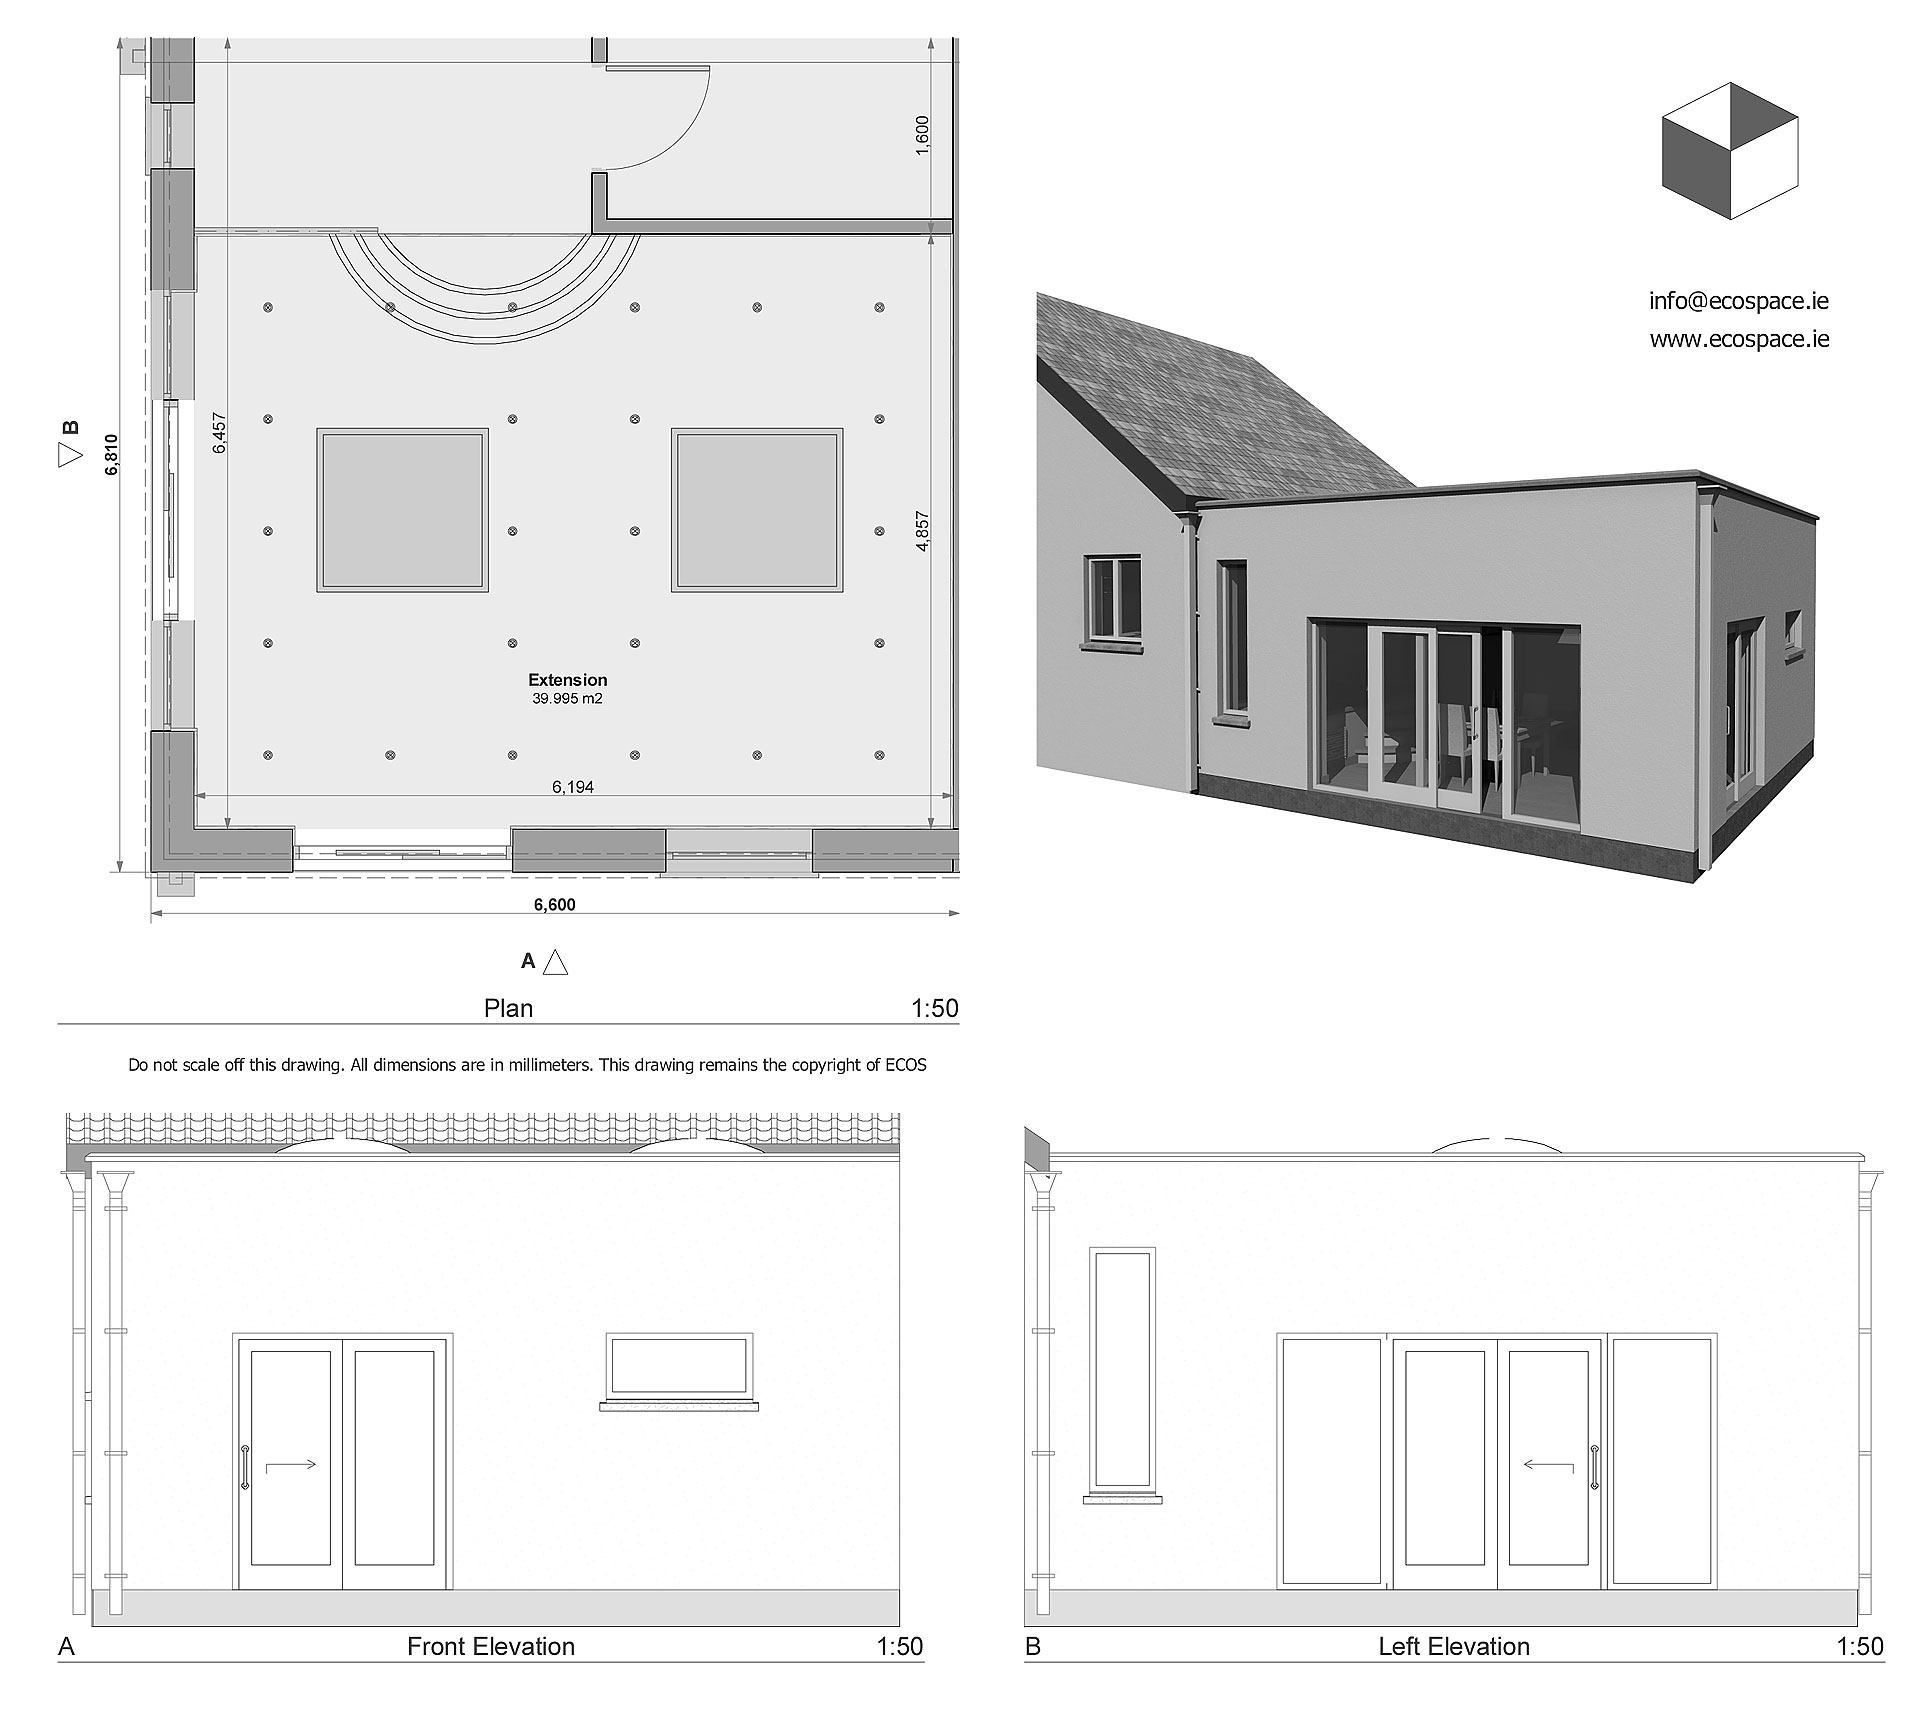 House extension design ideas images home extension for House plan design ideas